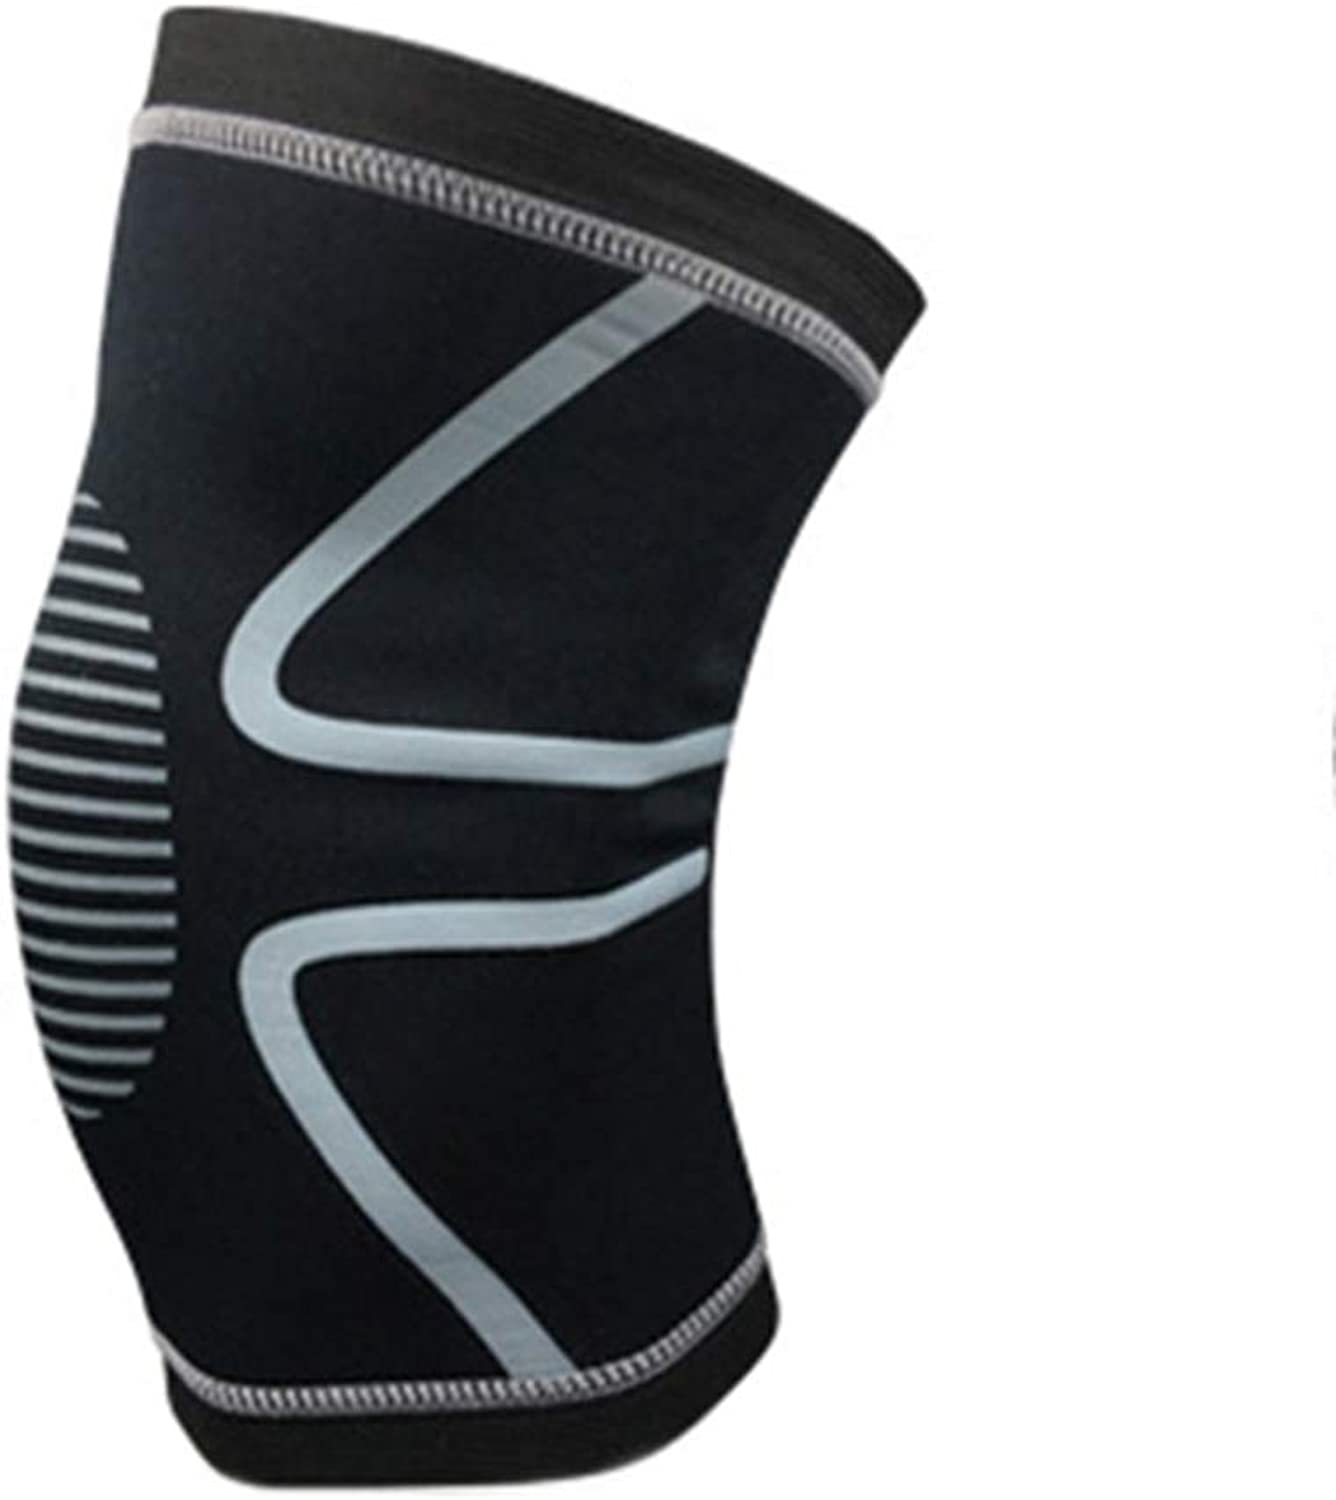 Knee Pad, Sports Knee Pads a Pair, Predective Knee Pads Breathable, Used for Arthritis Half Month Tearing Knee Joint Support